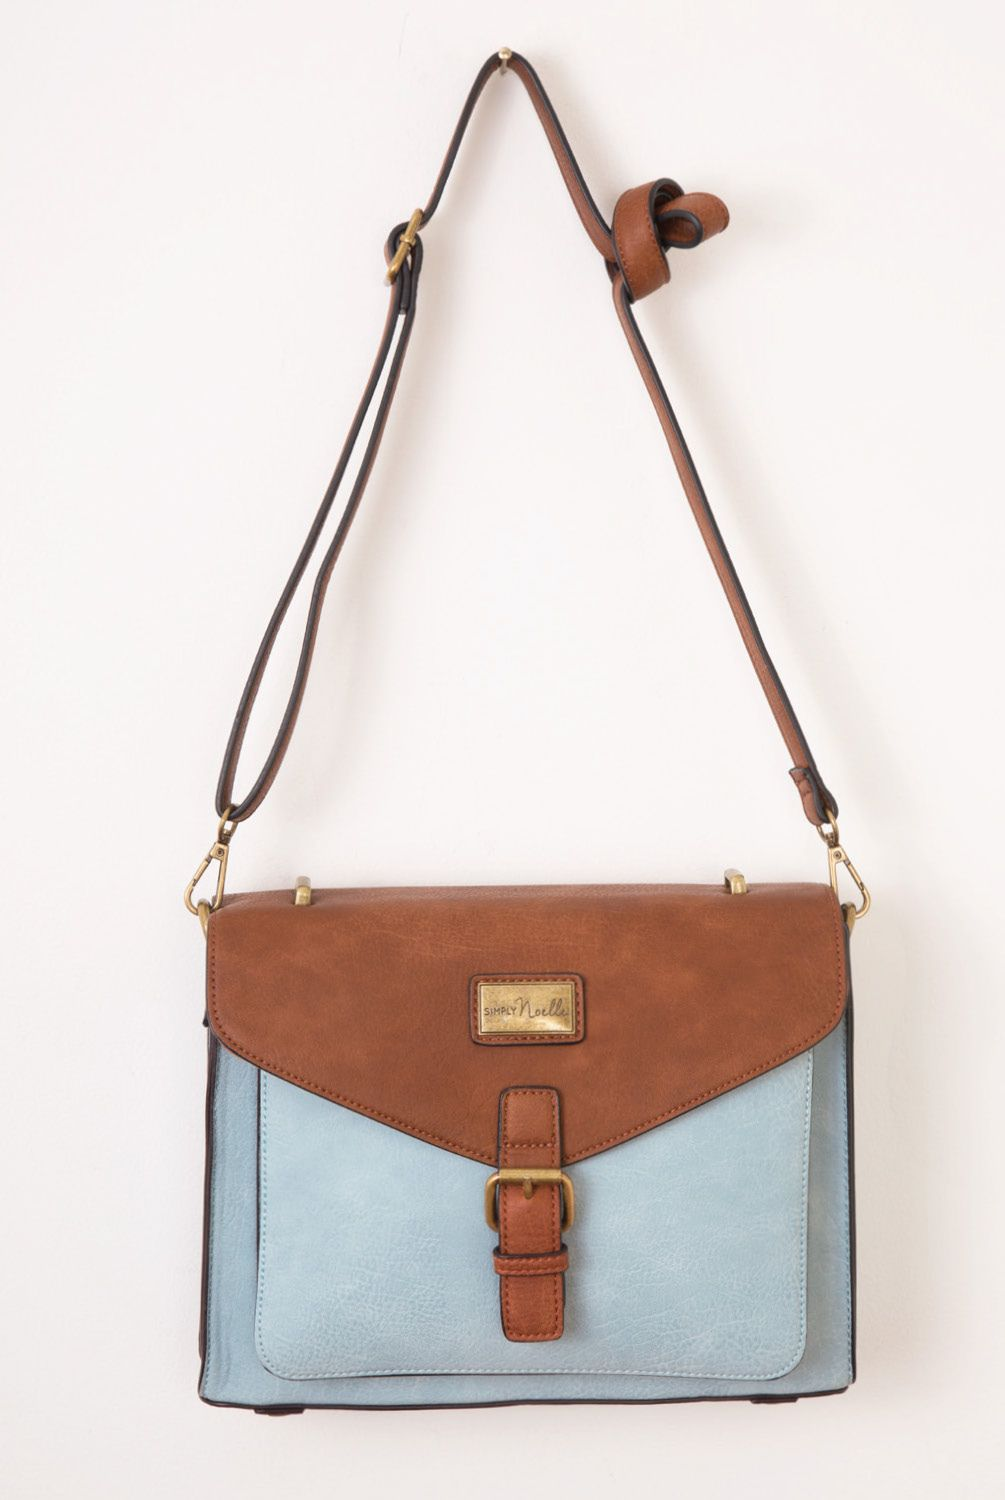 This Crossbody Handbag By Simply Noelle Is Ready For Your Next Adventure